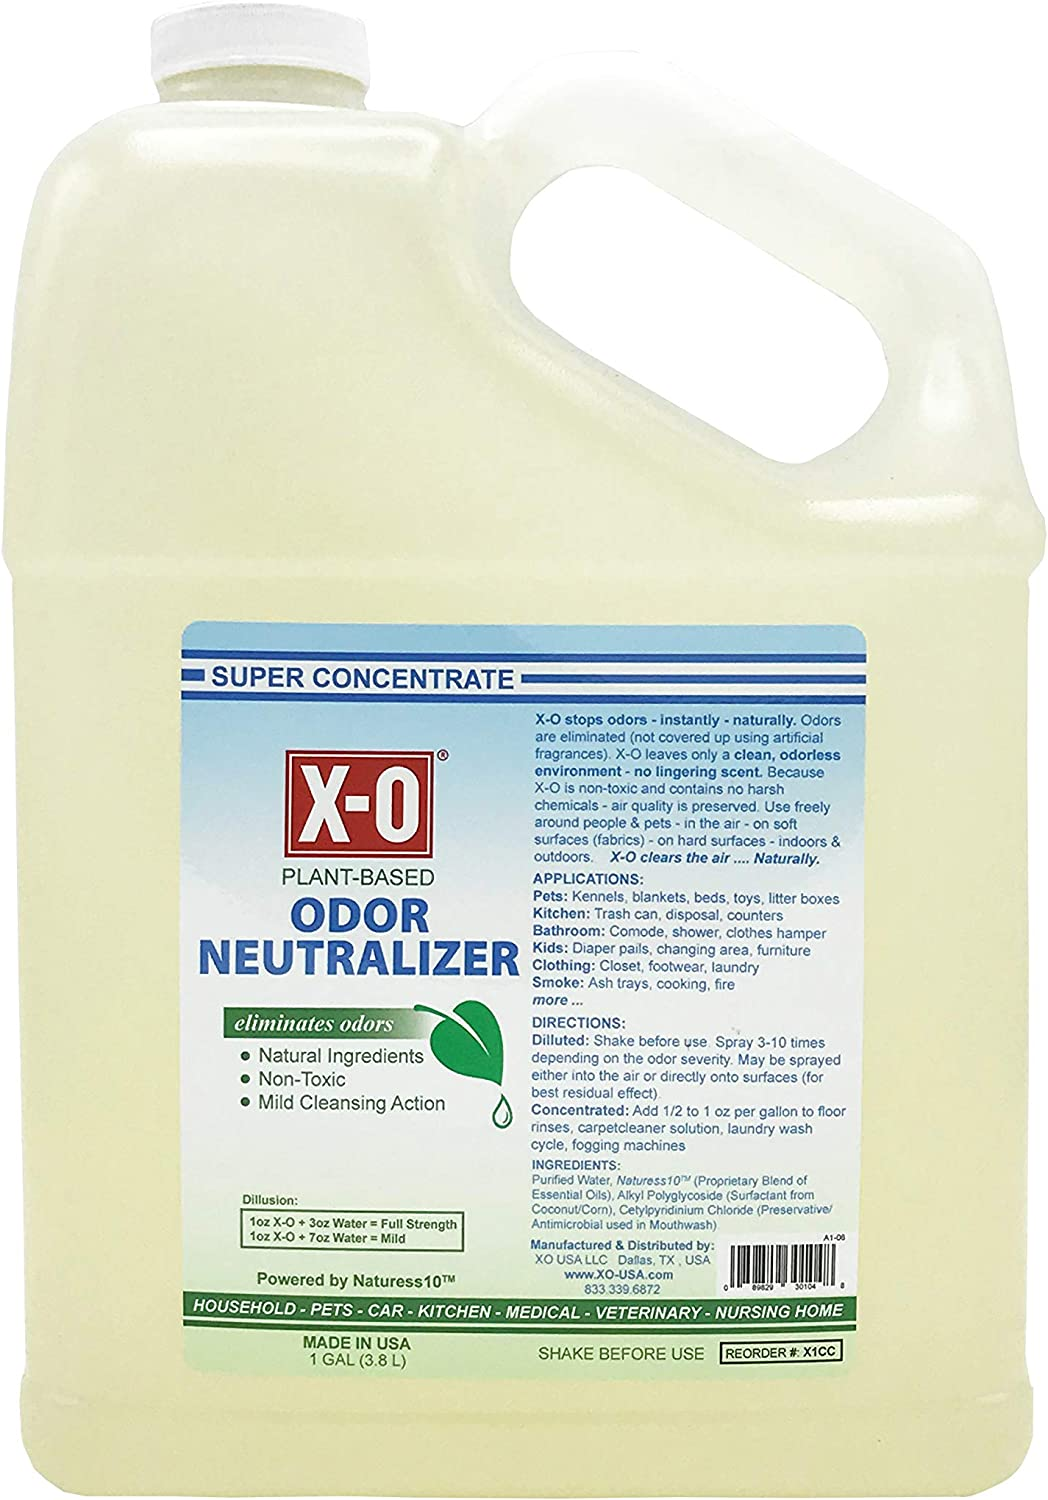 XO Plus Odor Neutralizer Cleaner Concentrated 1gallon 100% quality warranty Cheap mail order shopping 5g 32oz